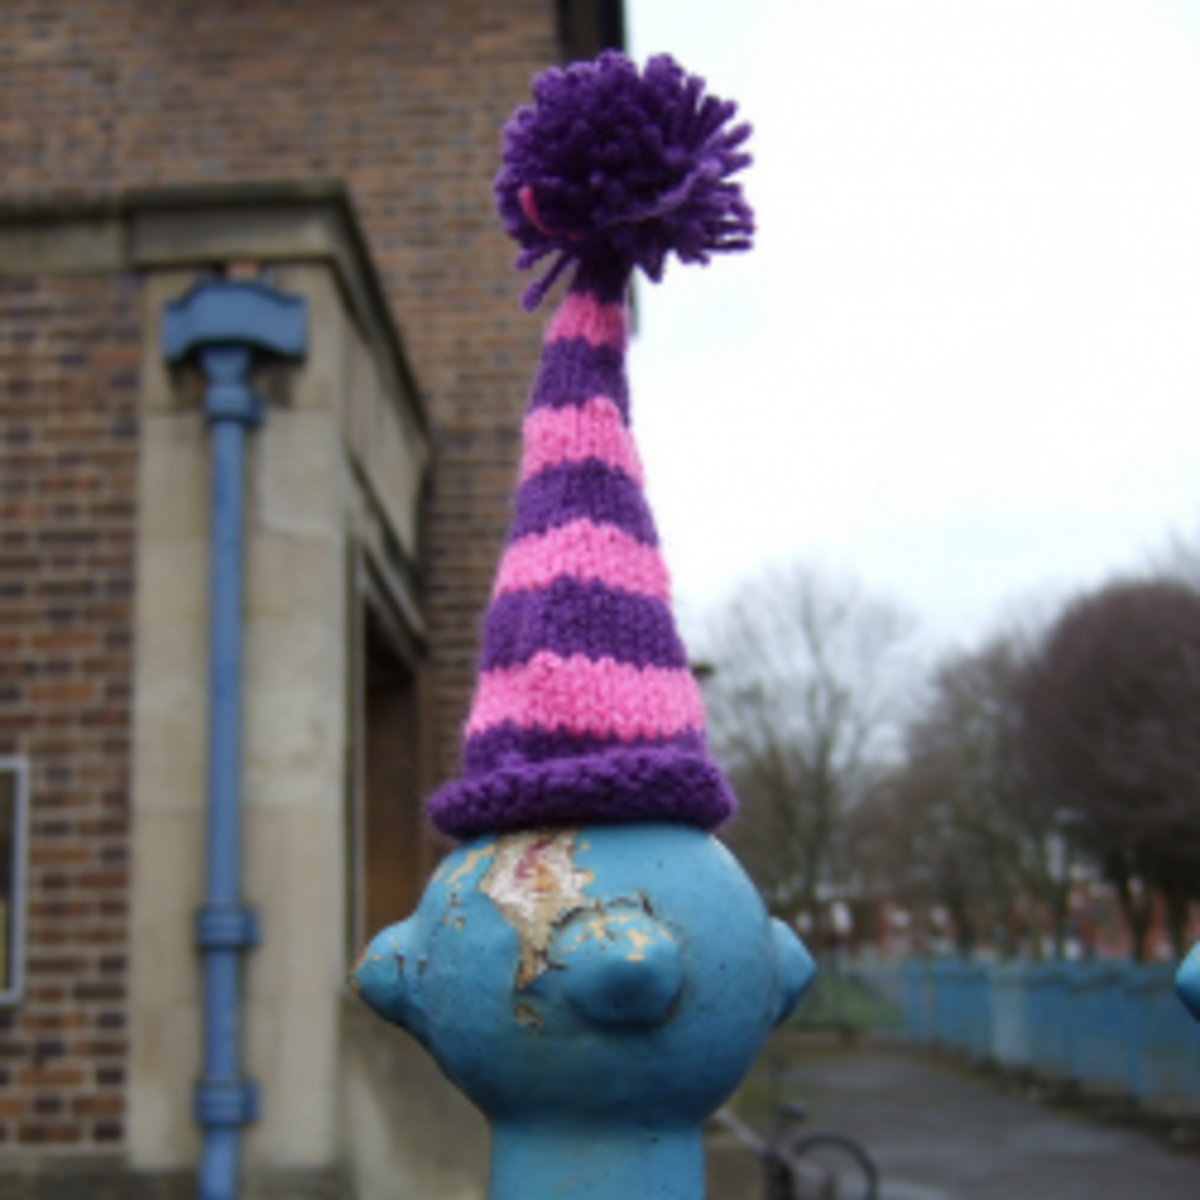 ★ Guerrilla Art | Gardening | Knitting | Cool Street Installations & Feel-Good Public Messages ★